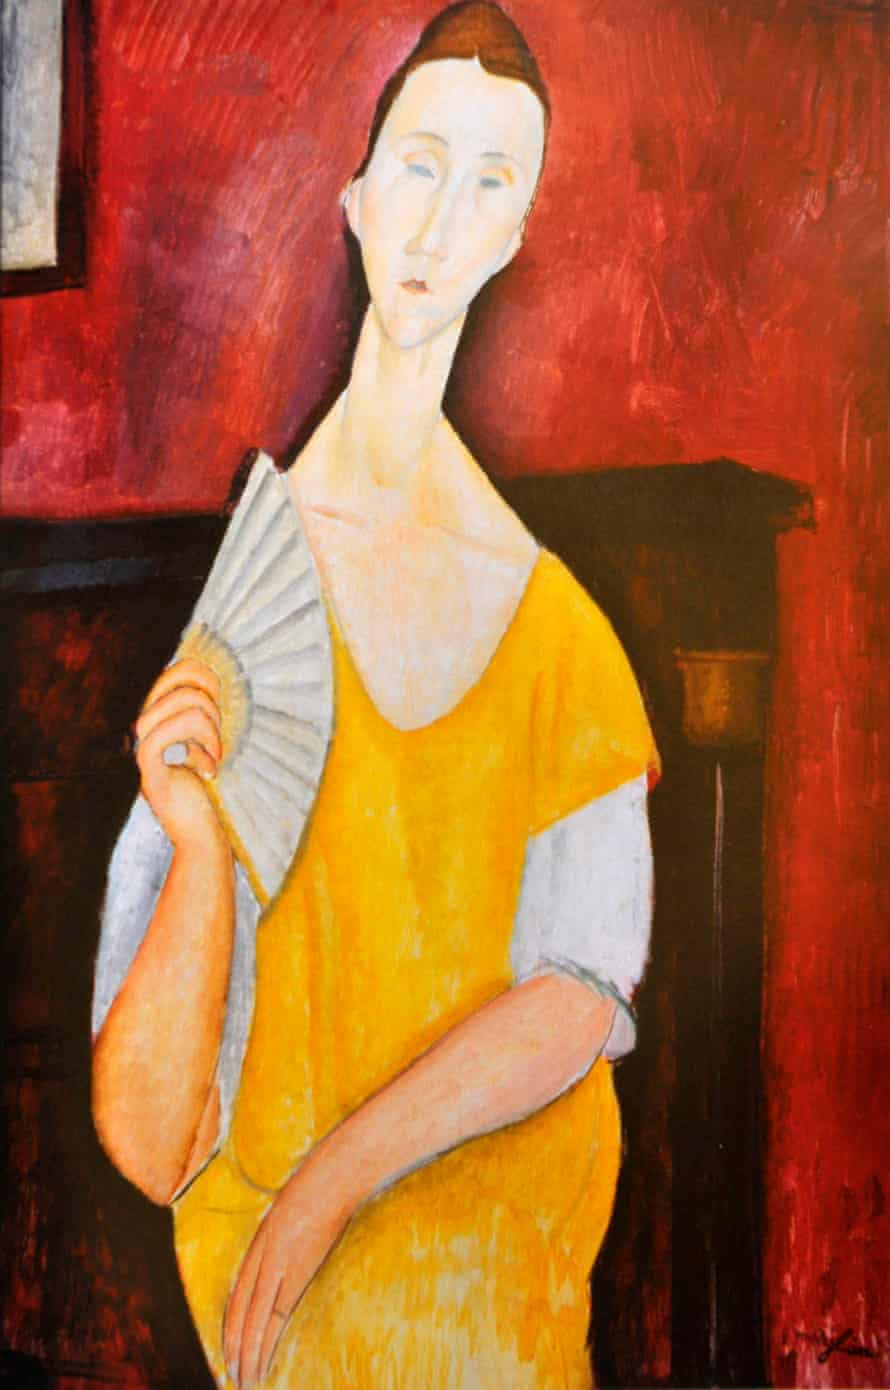 Modigliani's Woman with a Fan from 1919.